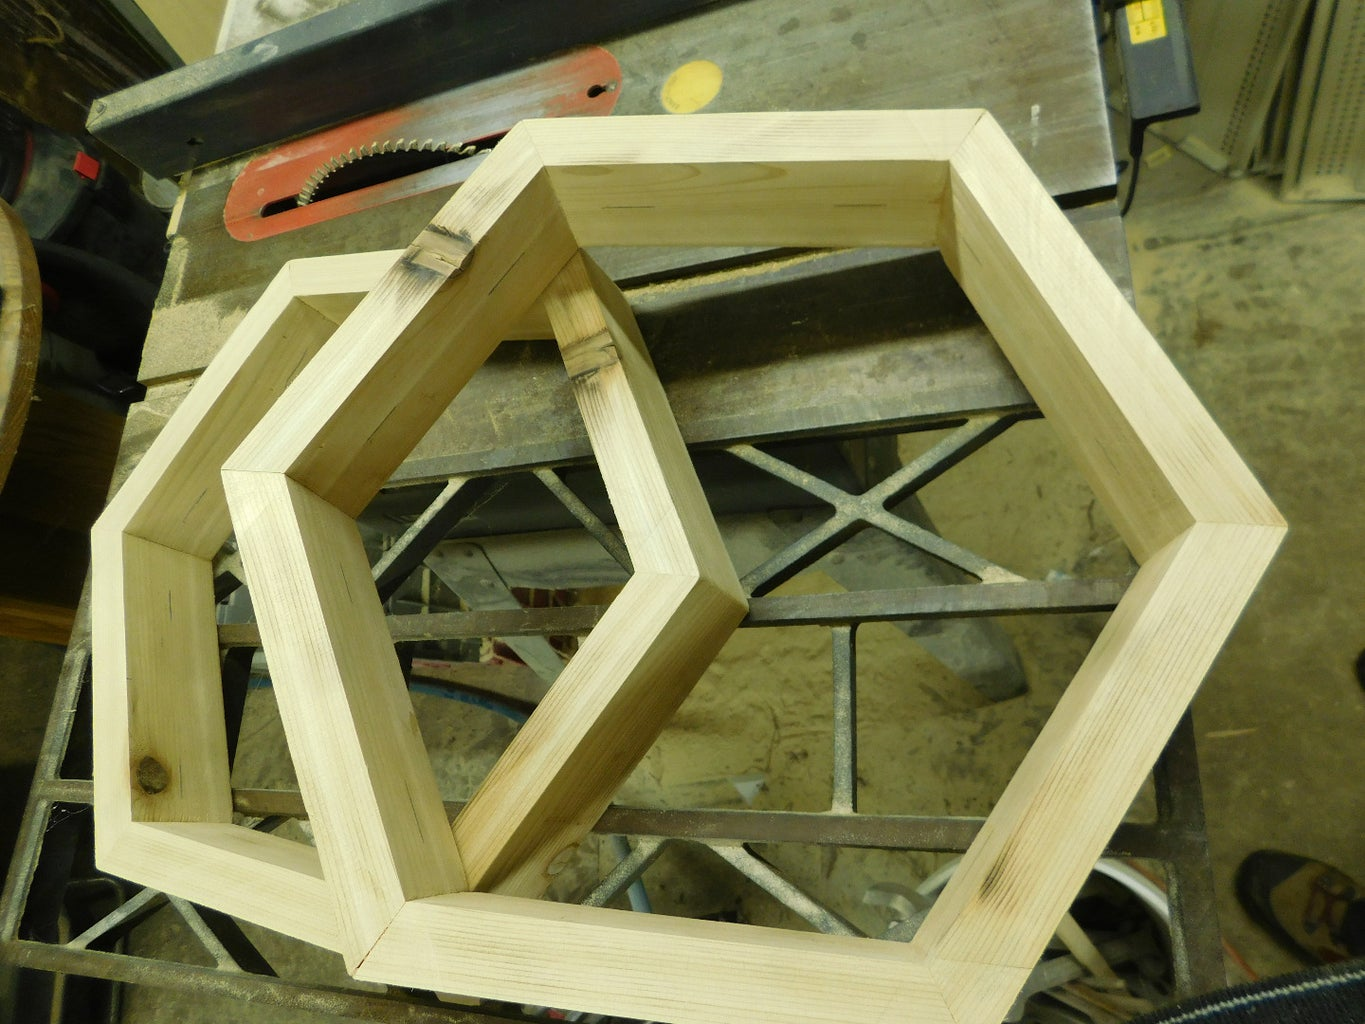 The First Hexagon: the Bottom Board and the Top Quilt Box